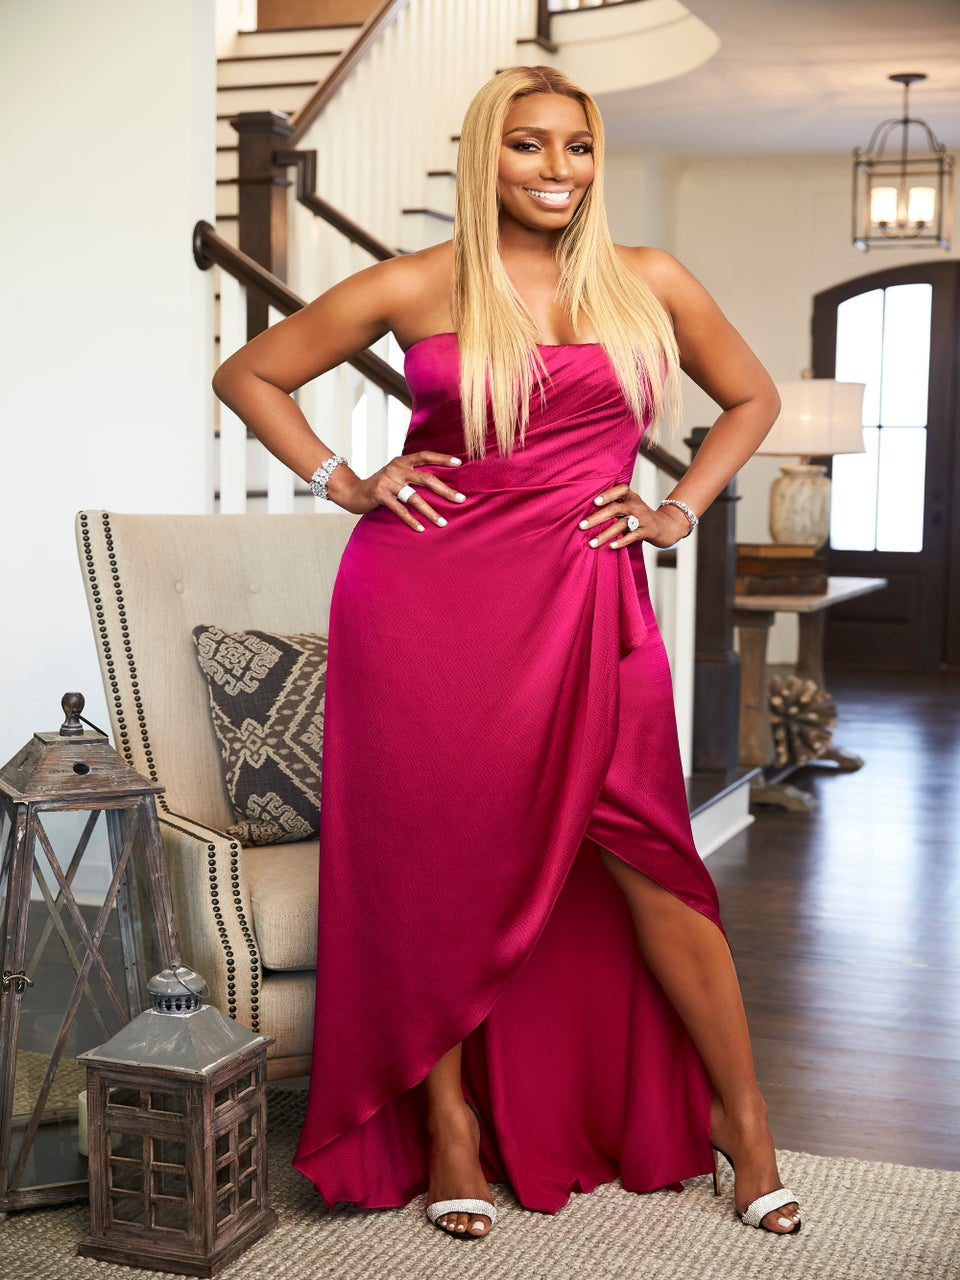 Did Nene Leakes' Rape Comment Land Her In Hot Water With 'RHOA' Producers?